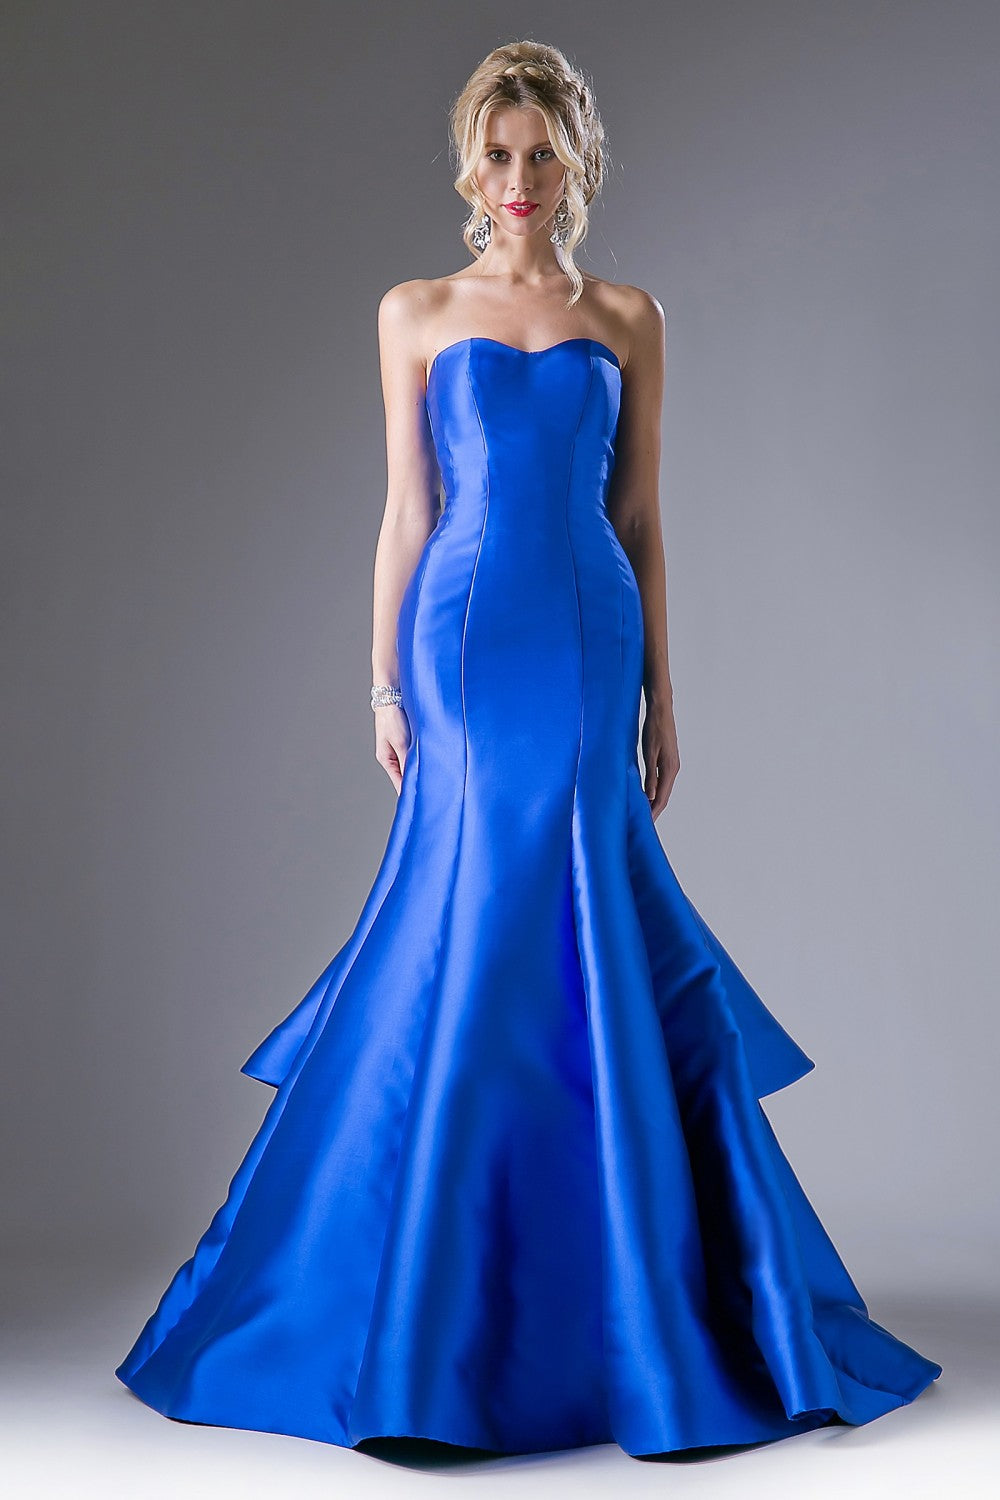 Satin Mermaid Gown